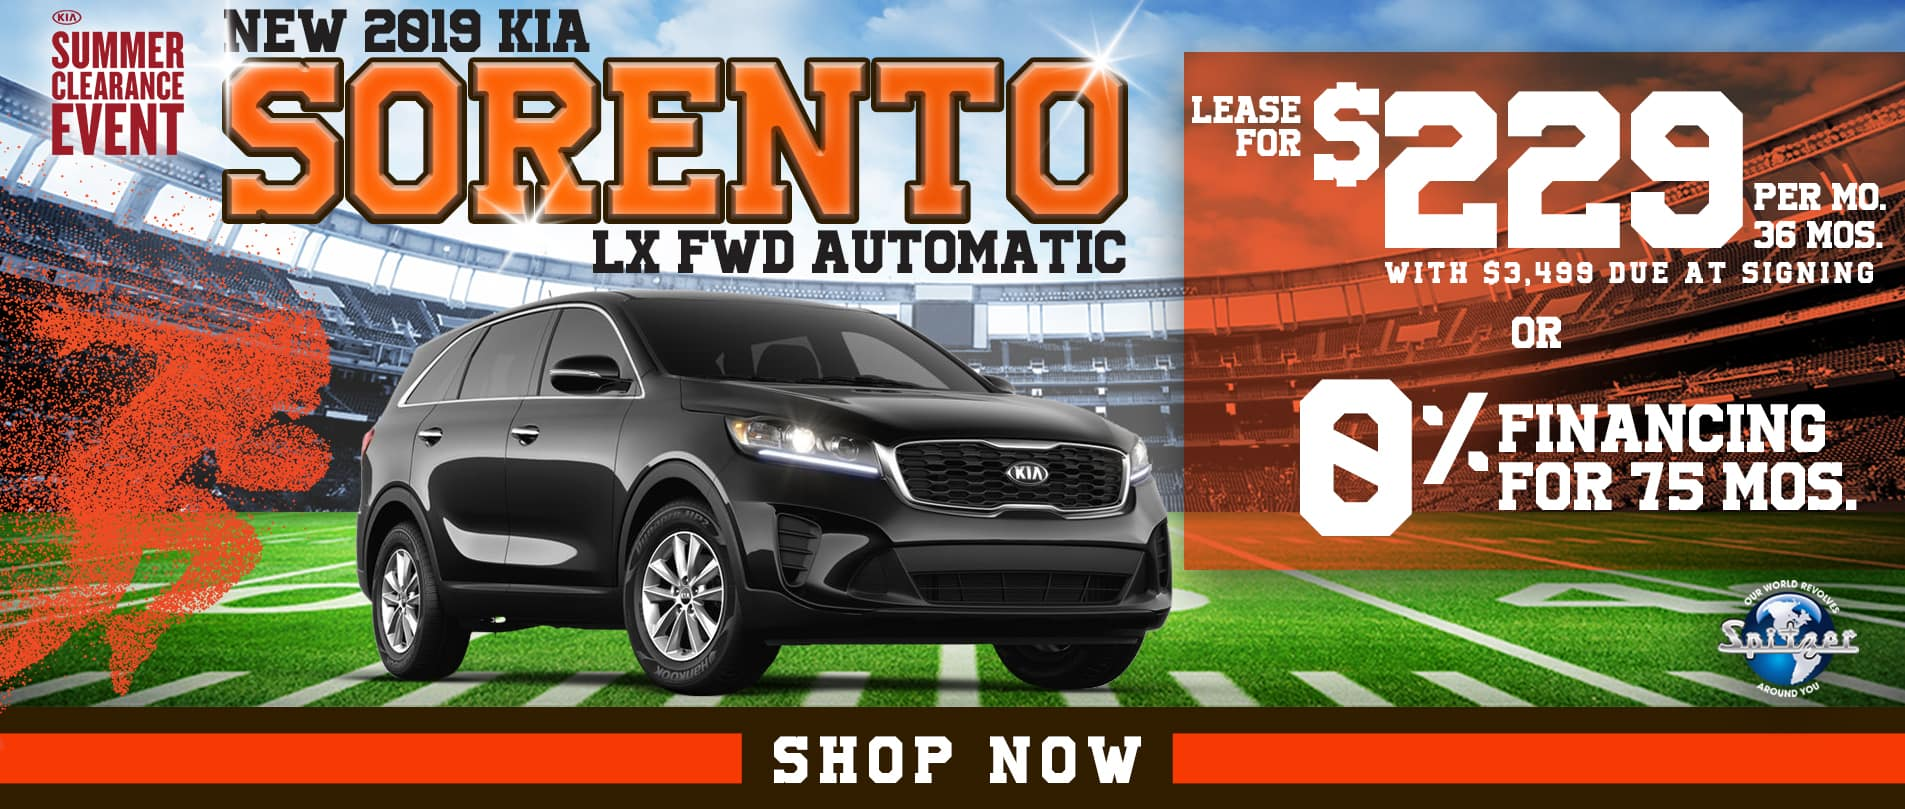 Sorento | Lease for $229 per month or 0% financing for 75 mos